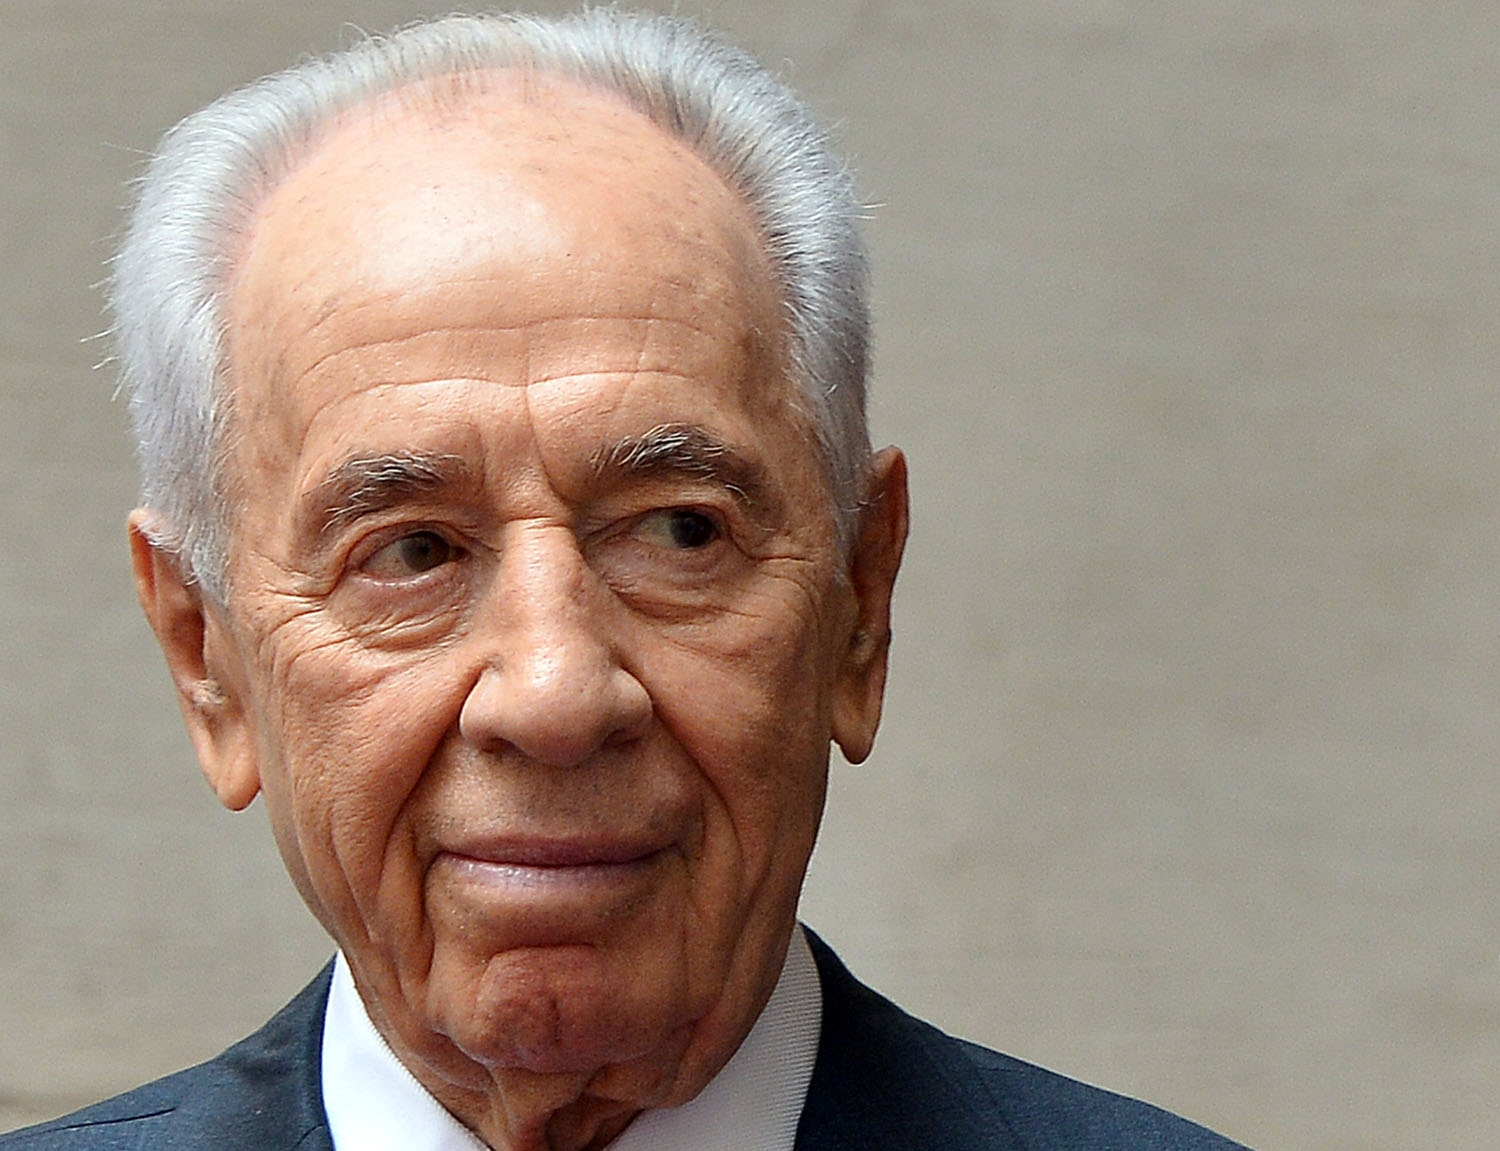 Israeli President Shimon Peres is pictured as he is welcomed by Italian Prime Minister at Chigi Palace in Rome on April 30, 2013